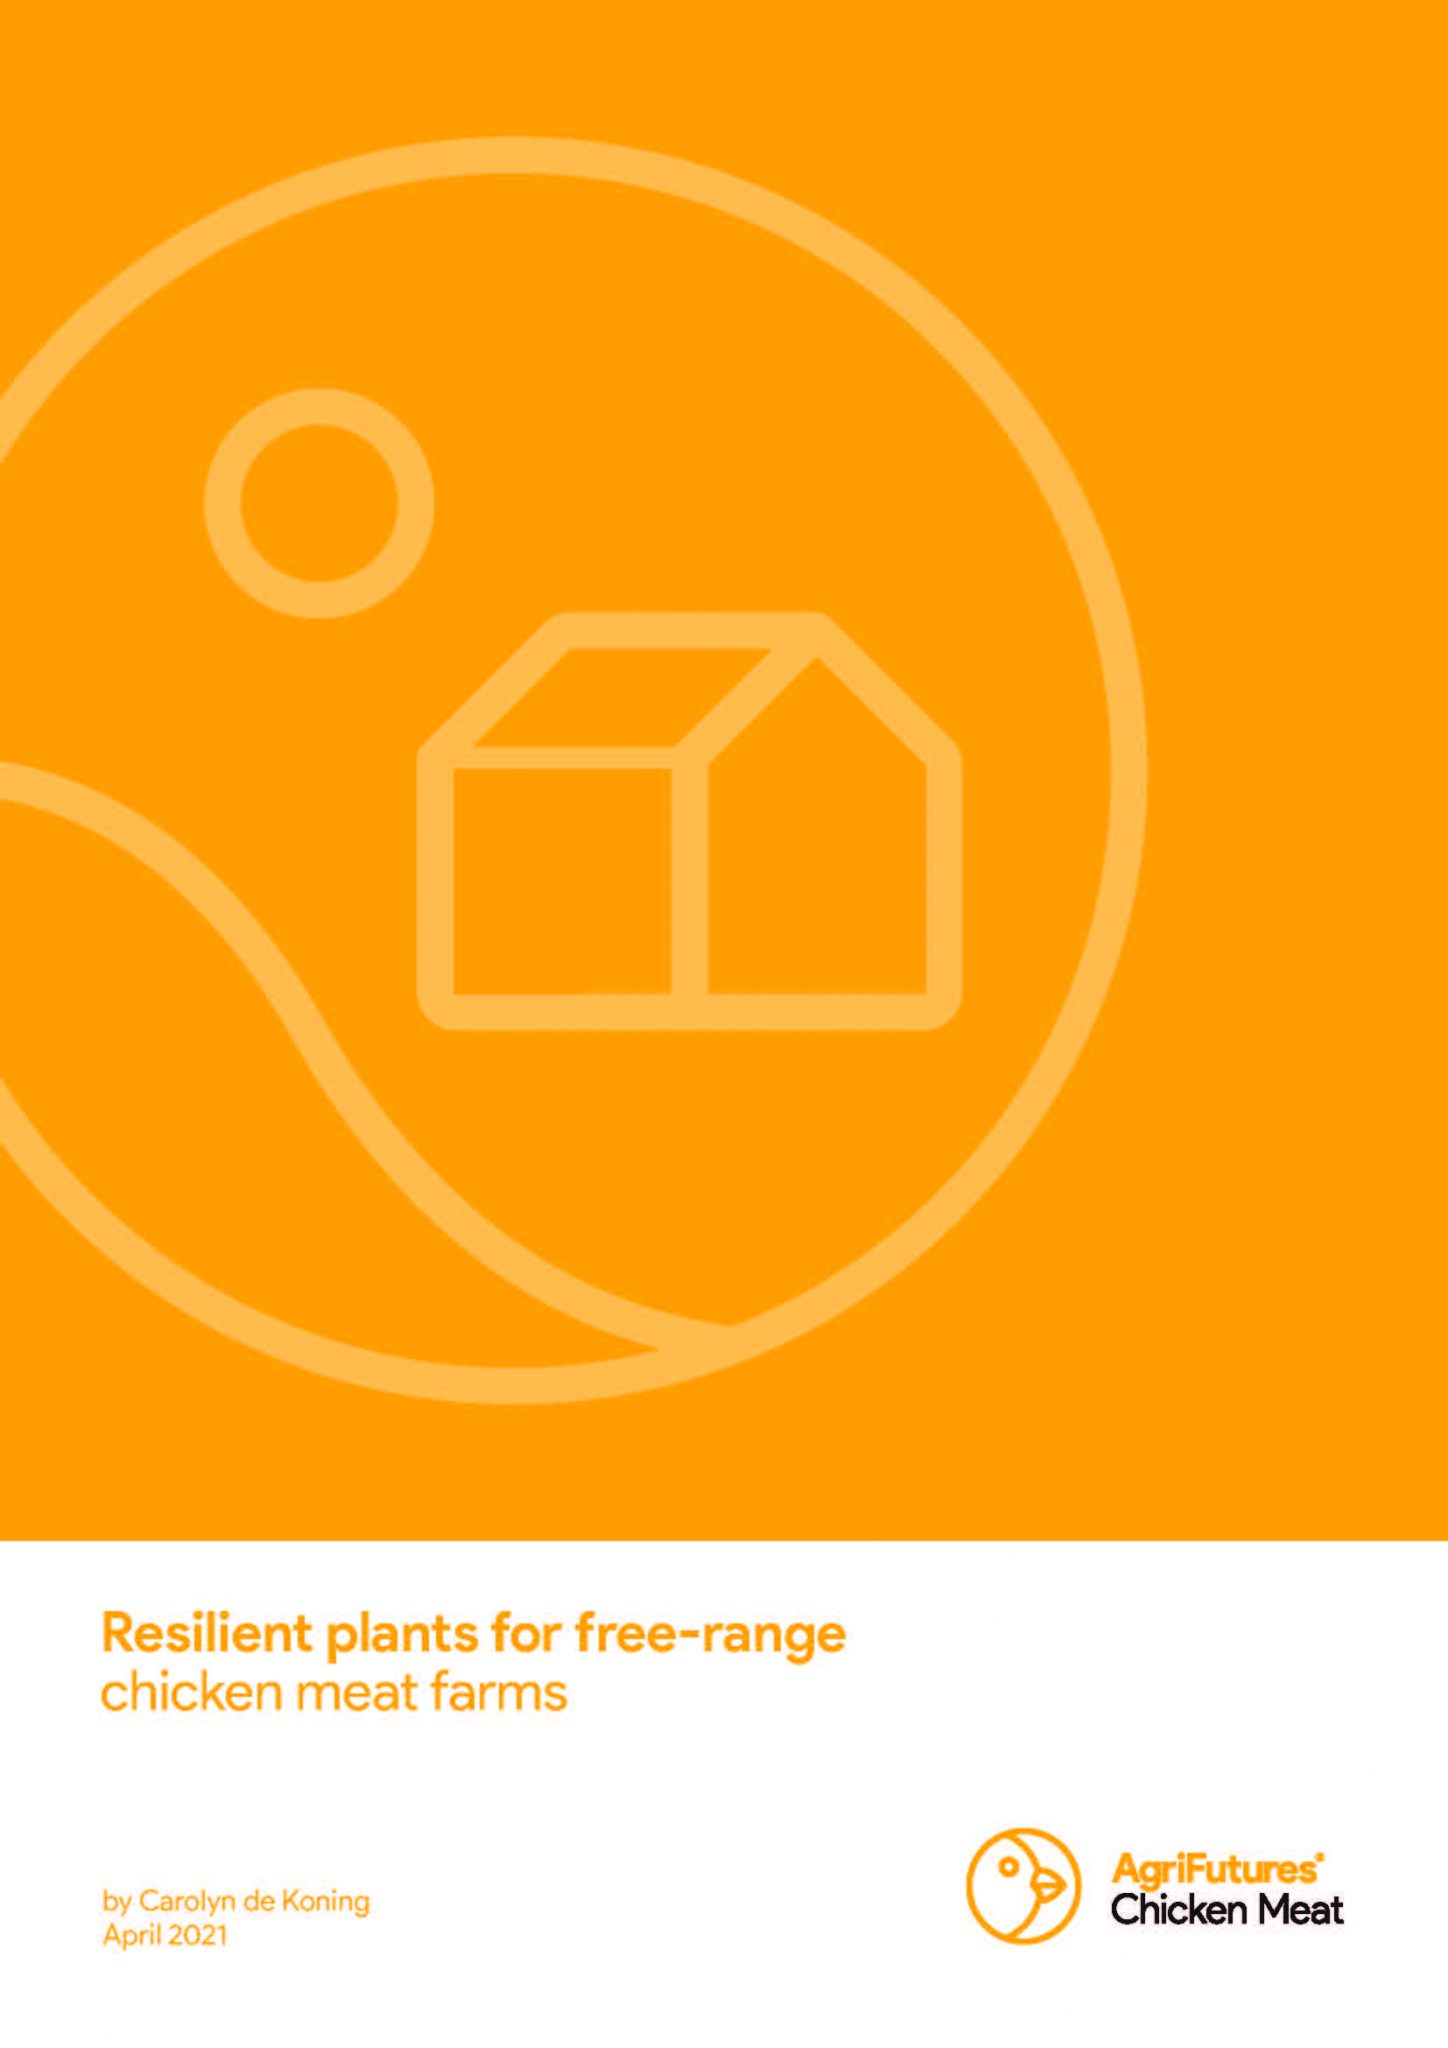 Final report: Resilient plants for free-range chicken meat farms - image